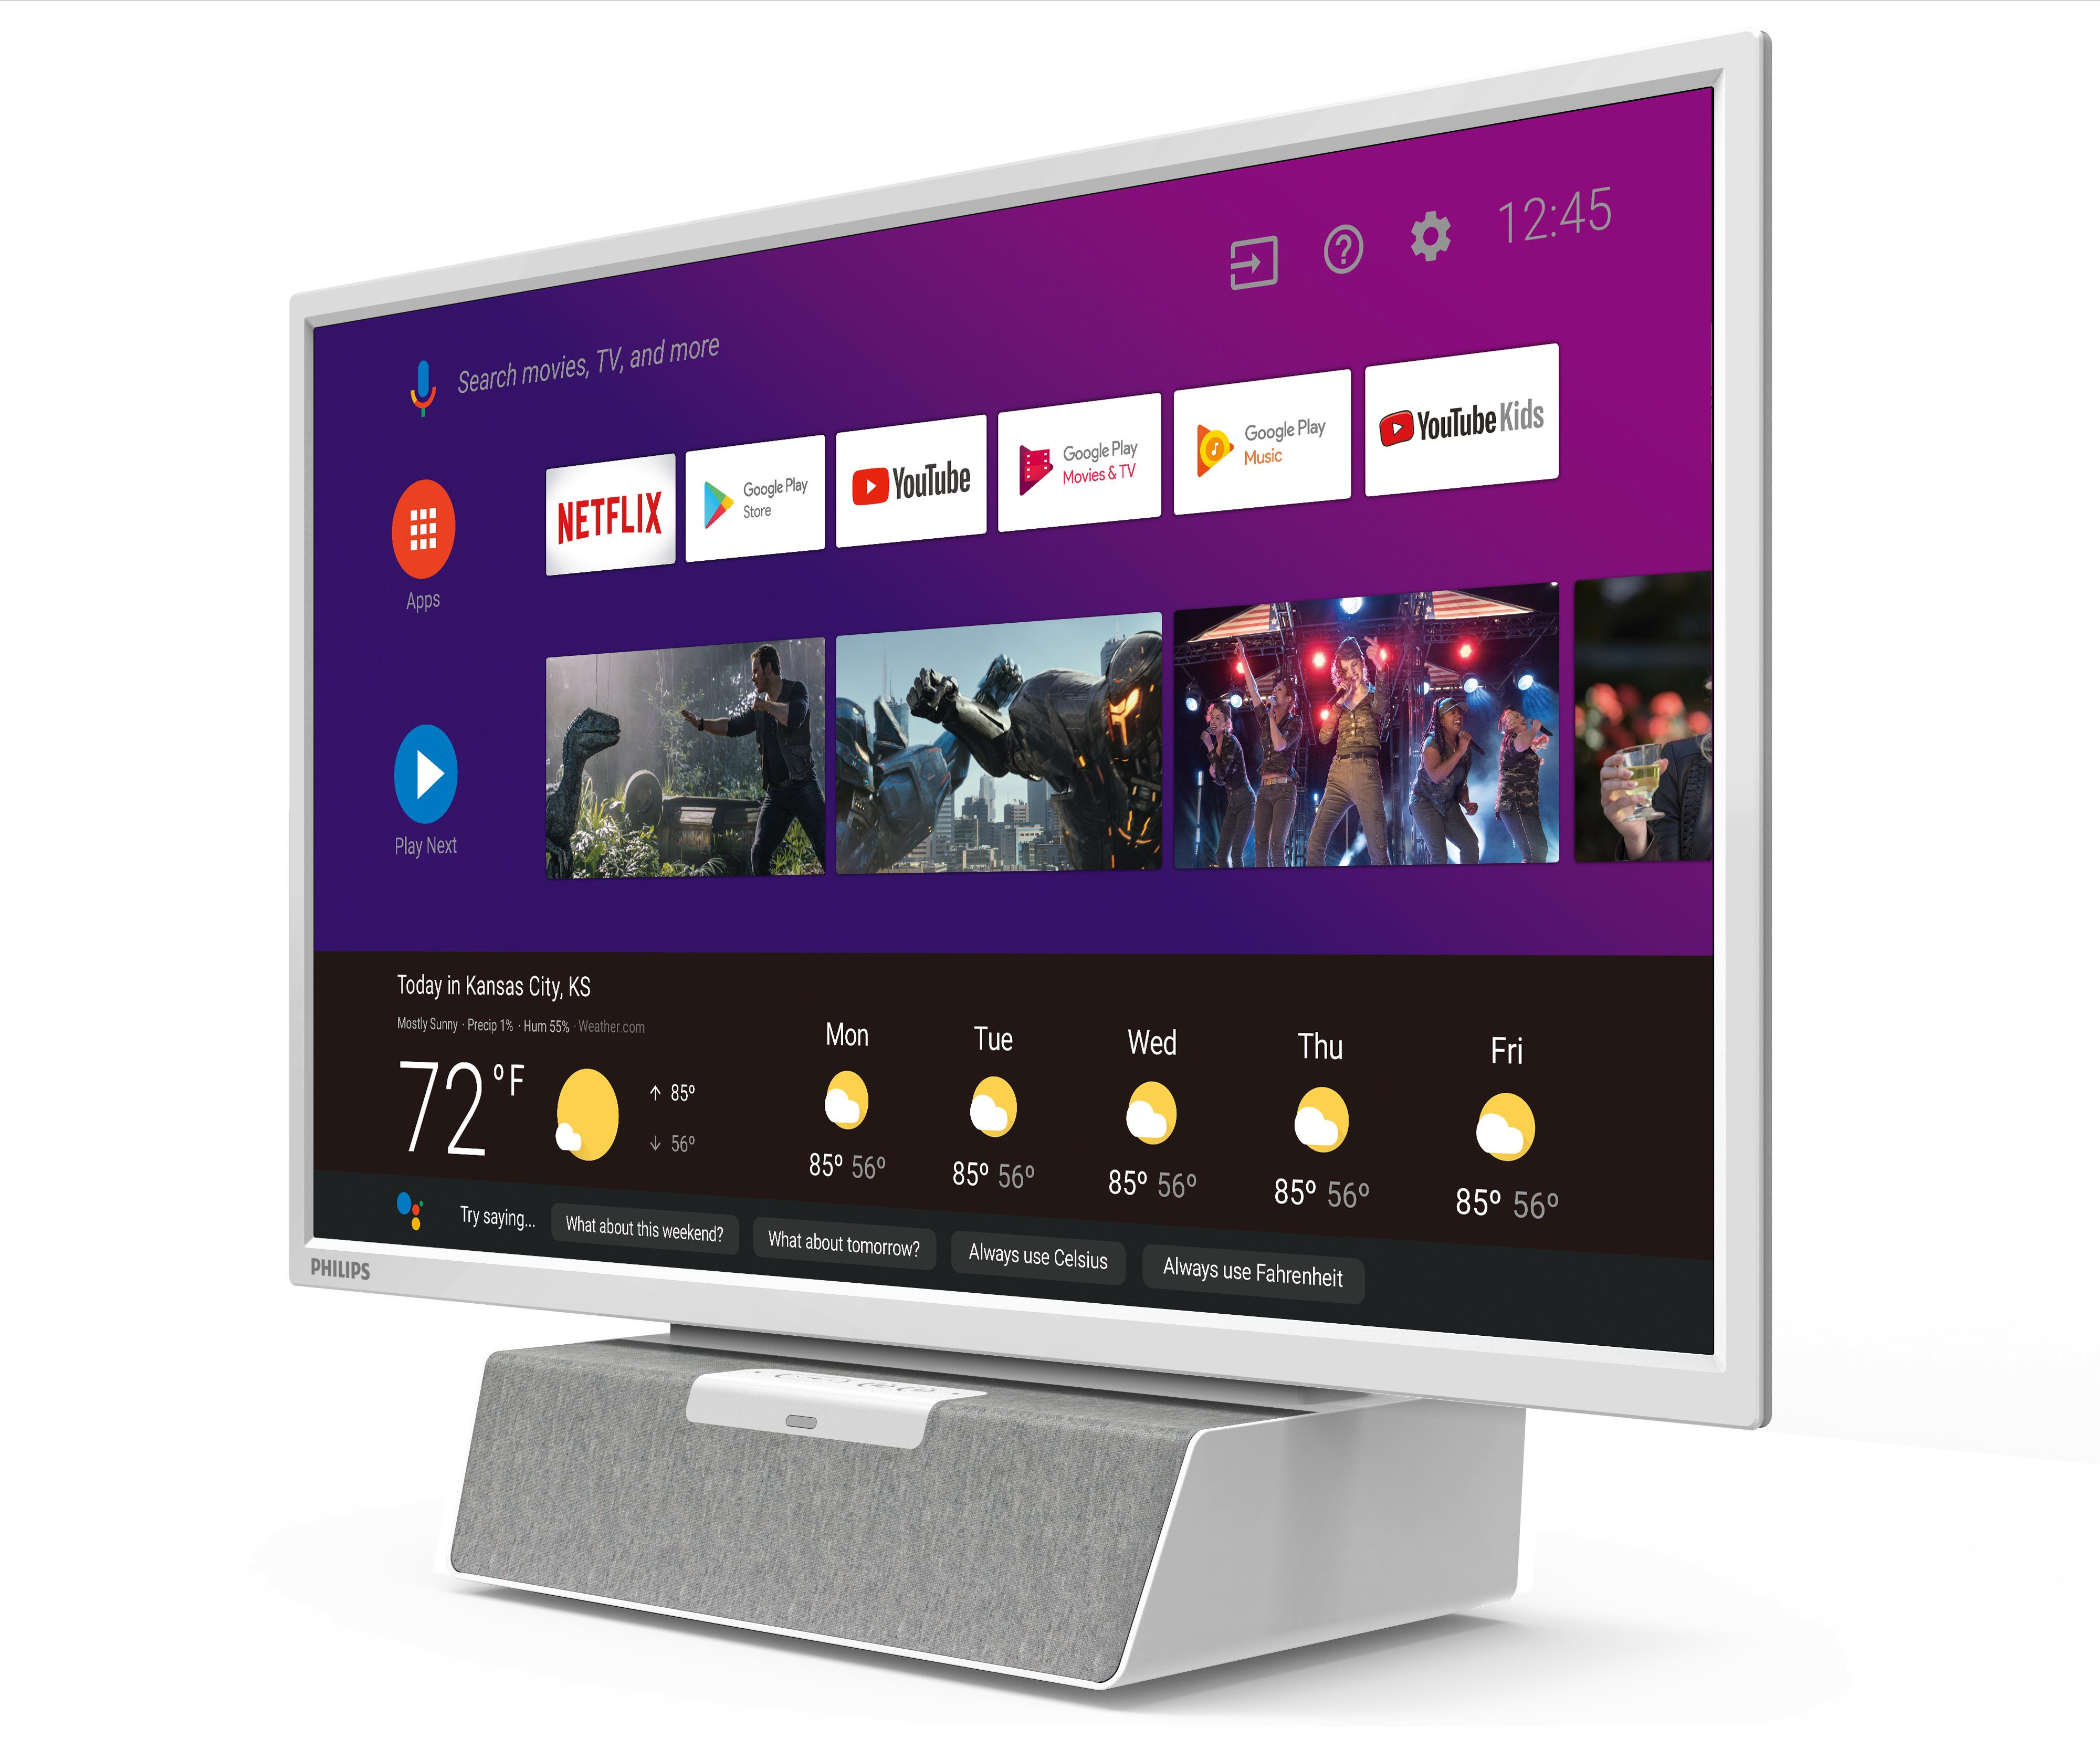 Philips telewizor do kuchni Android TV z Asystent Google